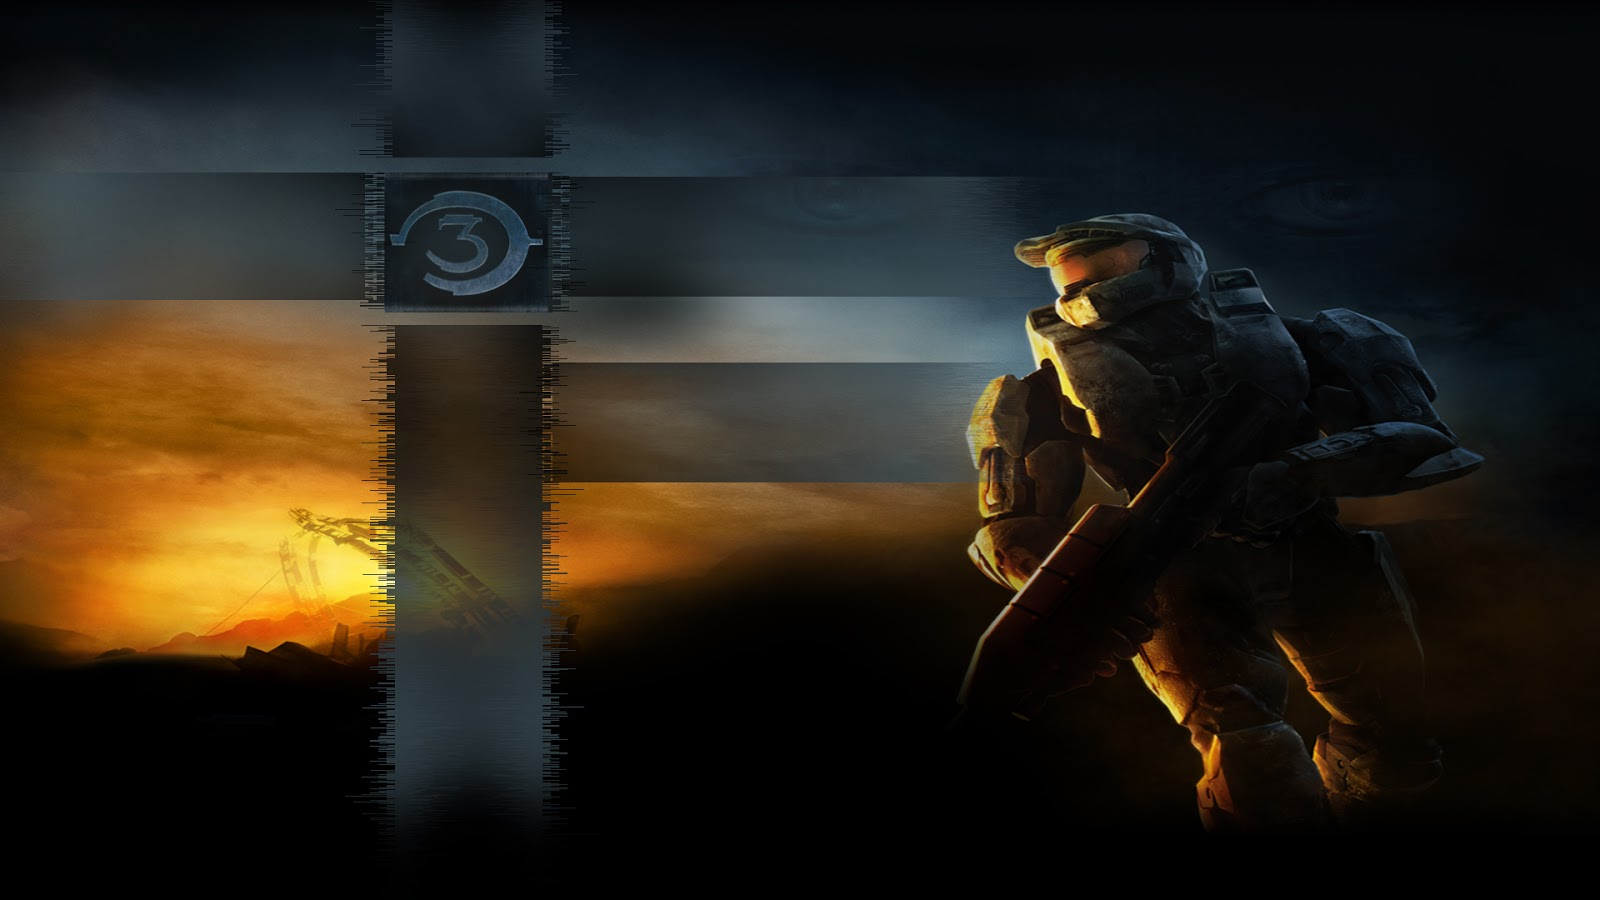 halo 3 wallpapers ~ tekken master